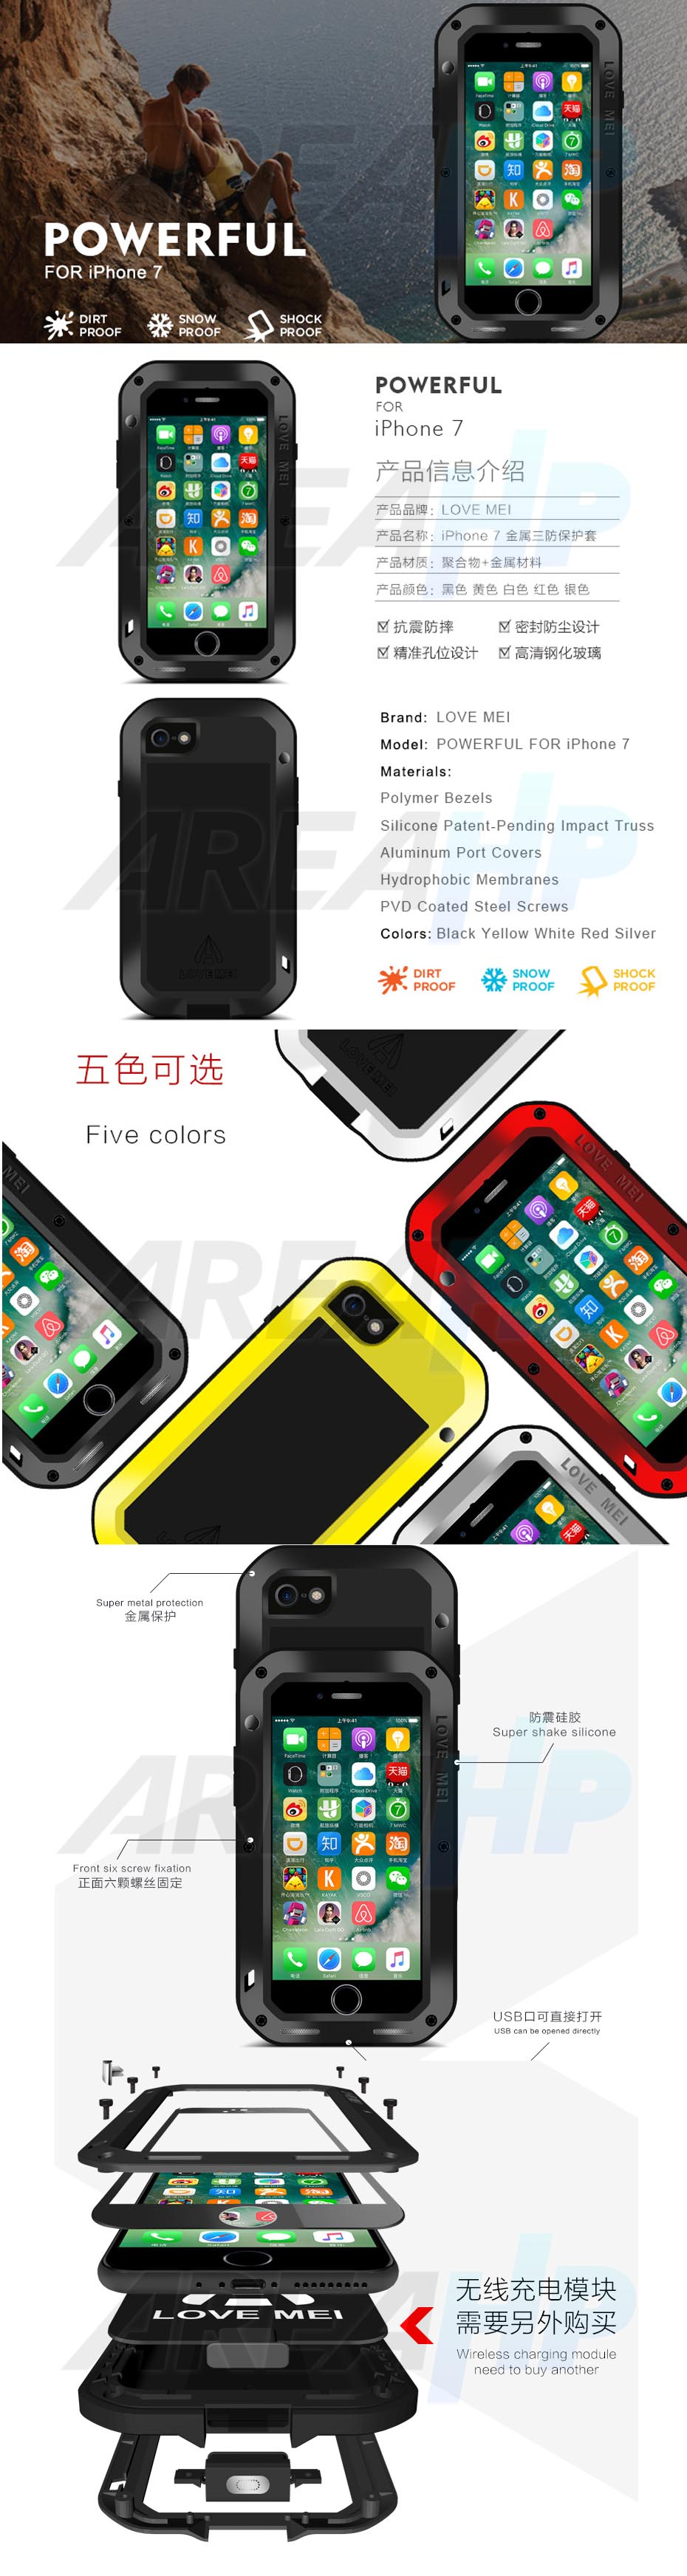 love-mei-powerful-case-for-iphone-7-overview